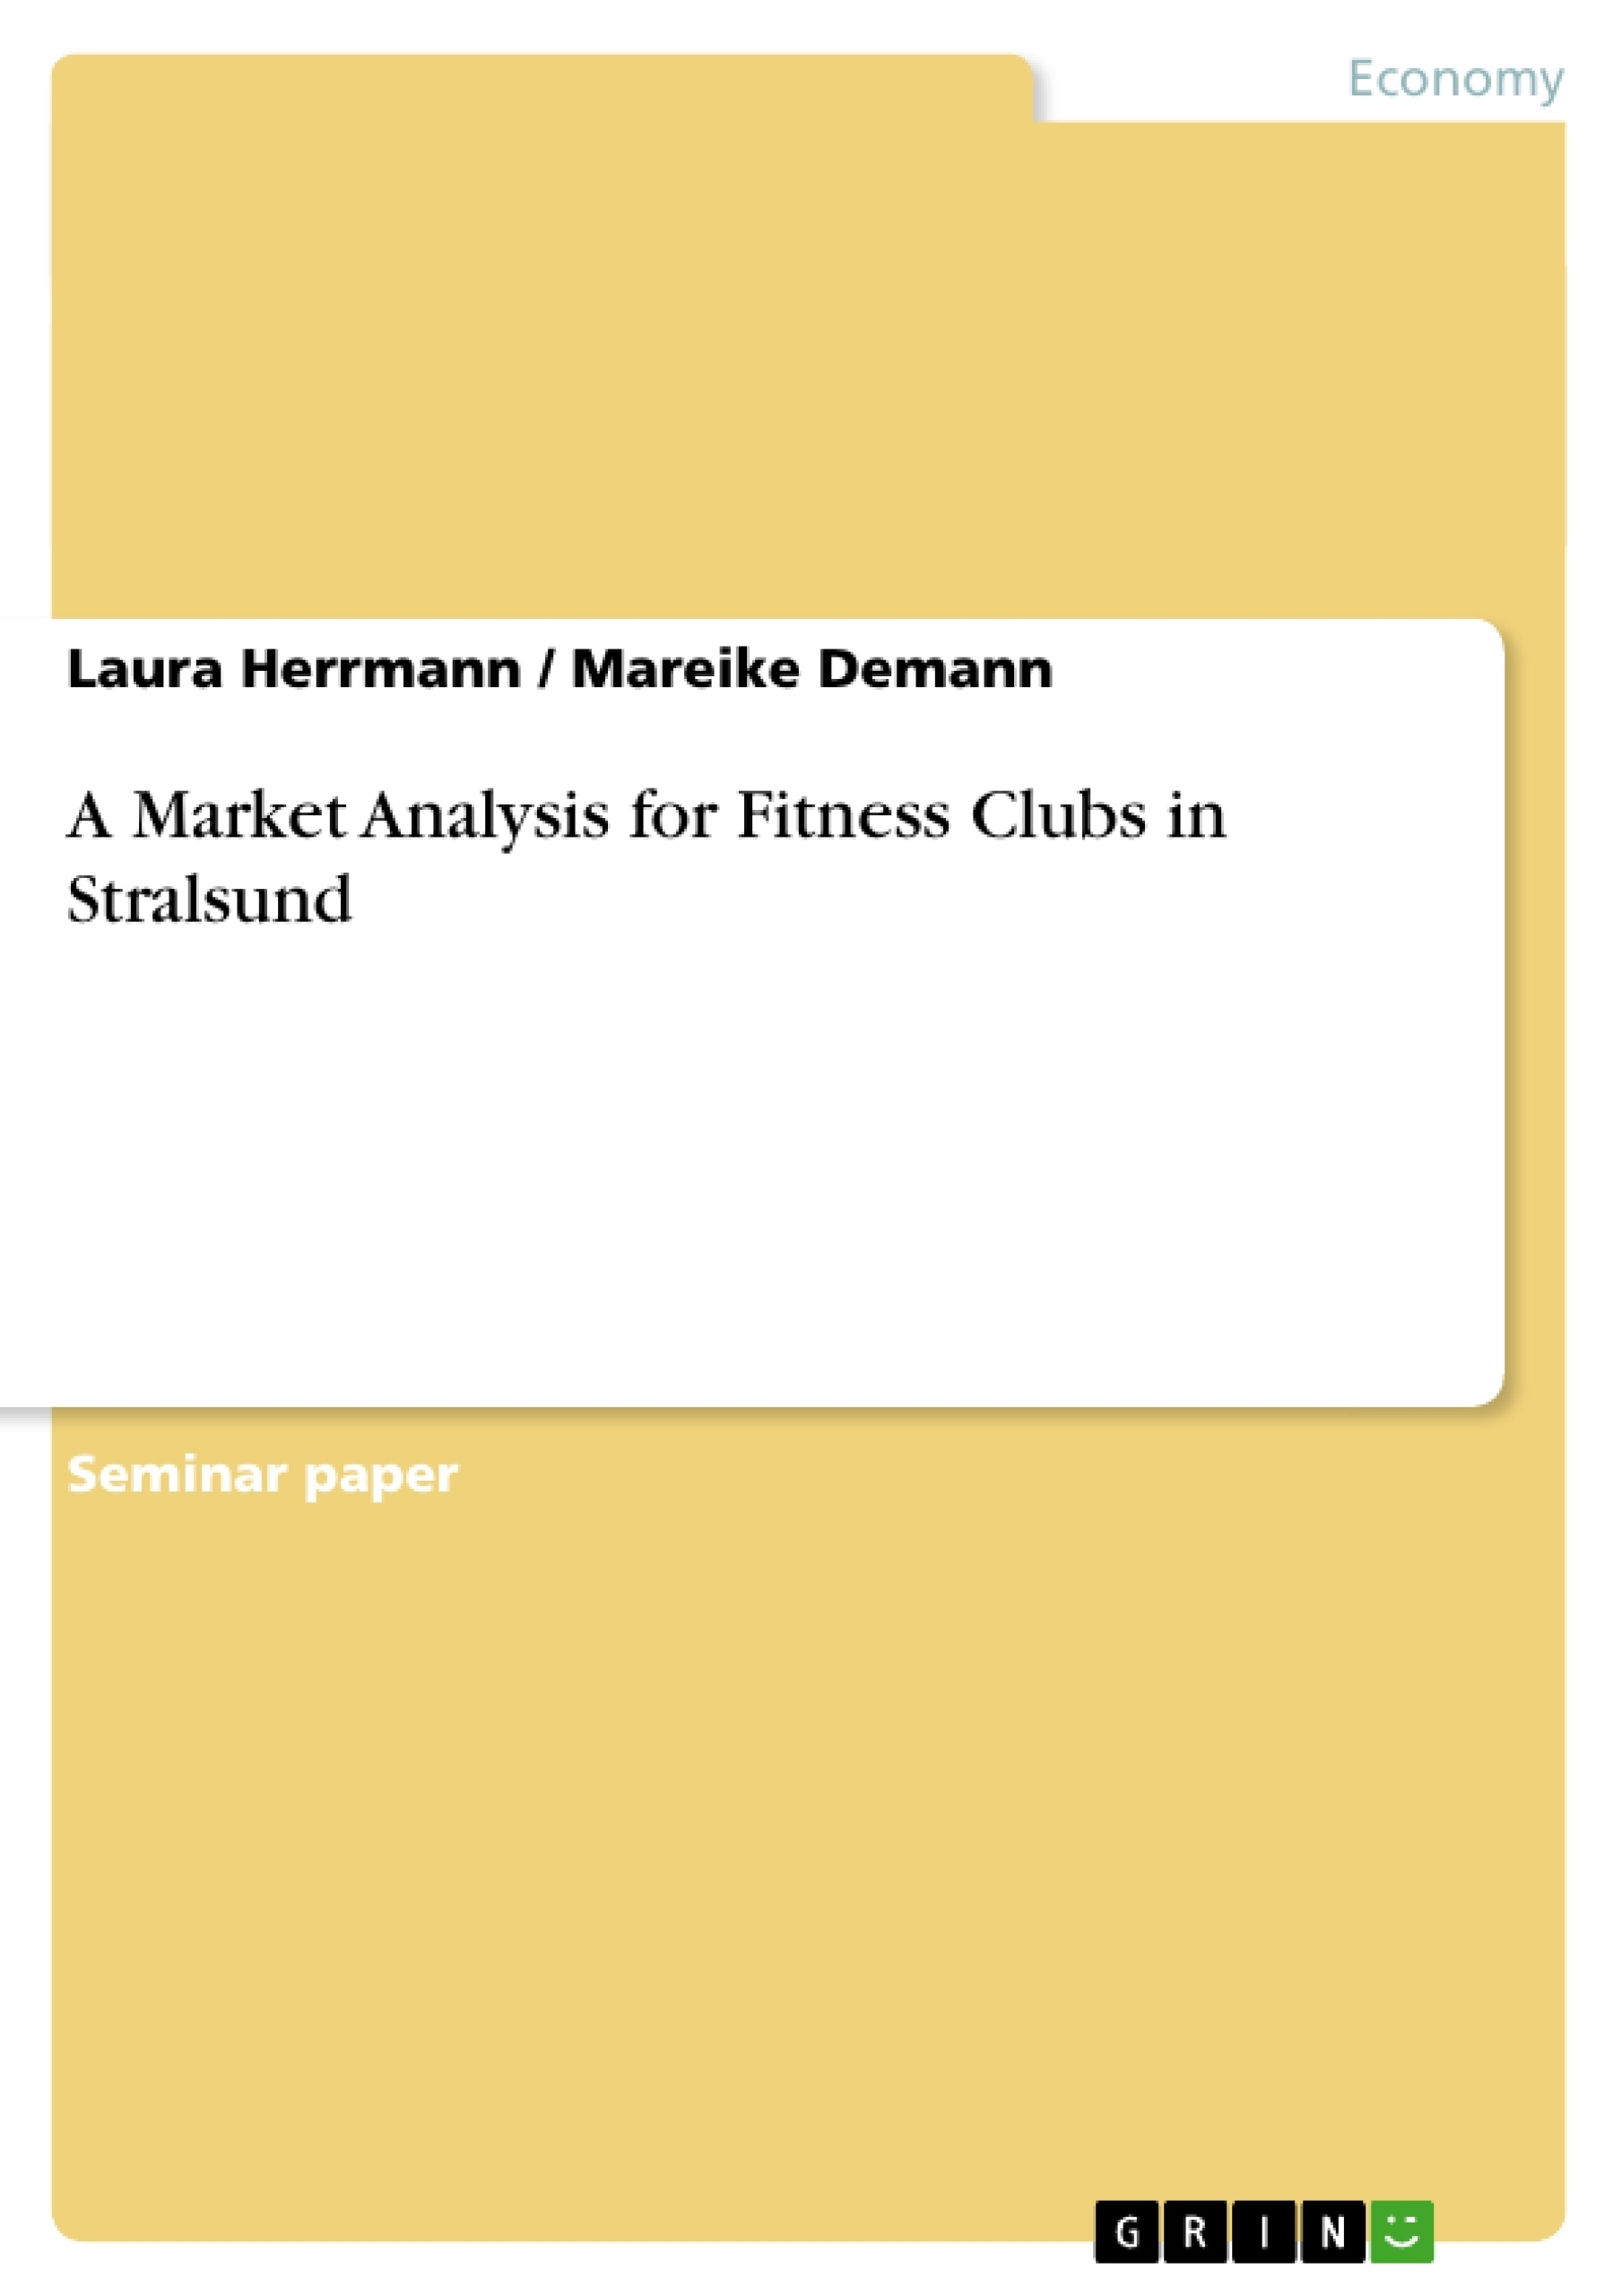 Title: A Market Analysis for Fitness Clubs in Stralsund